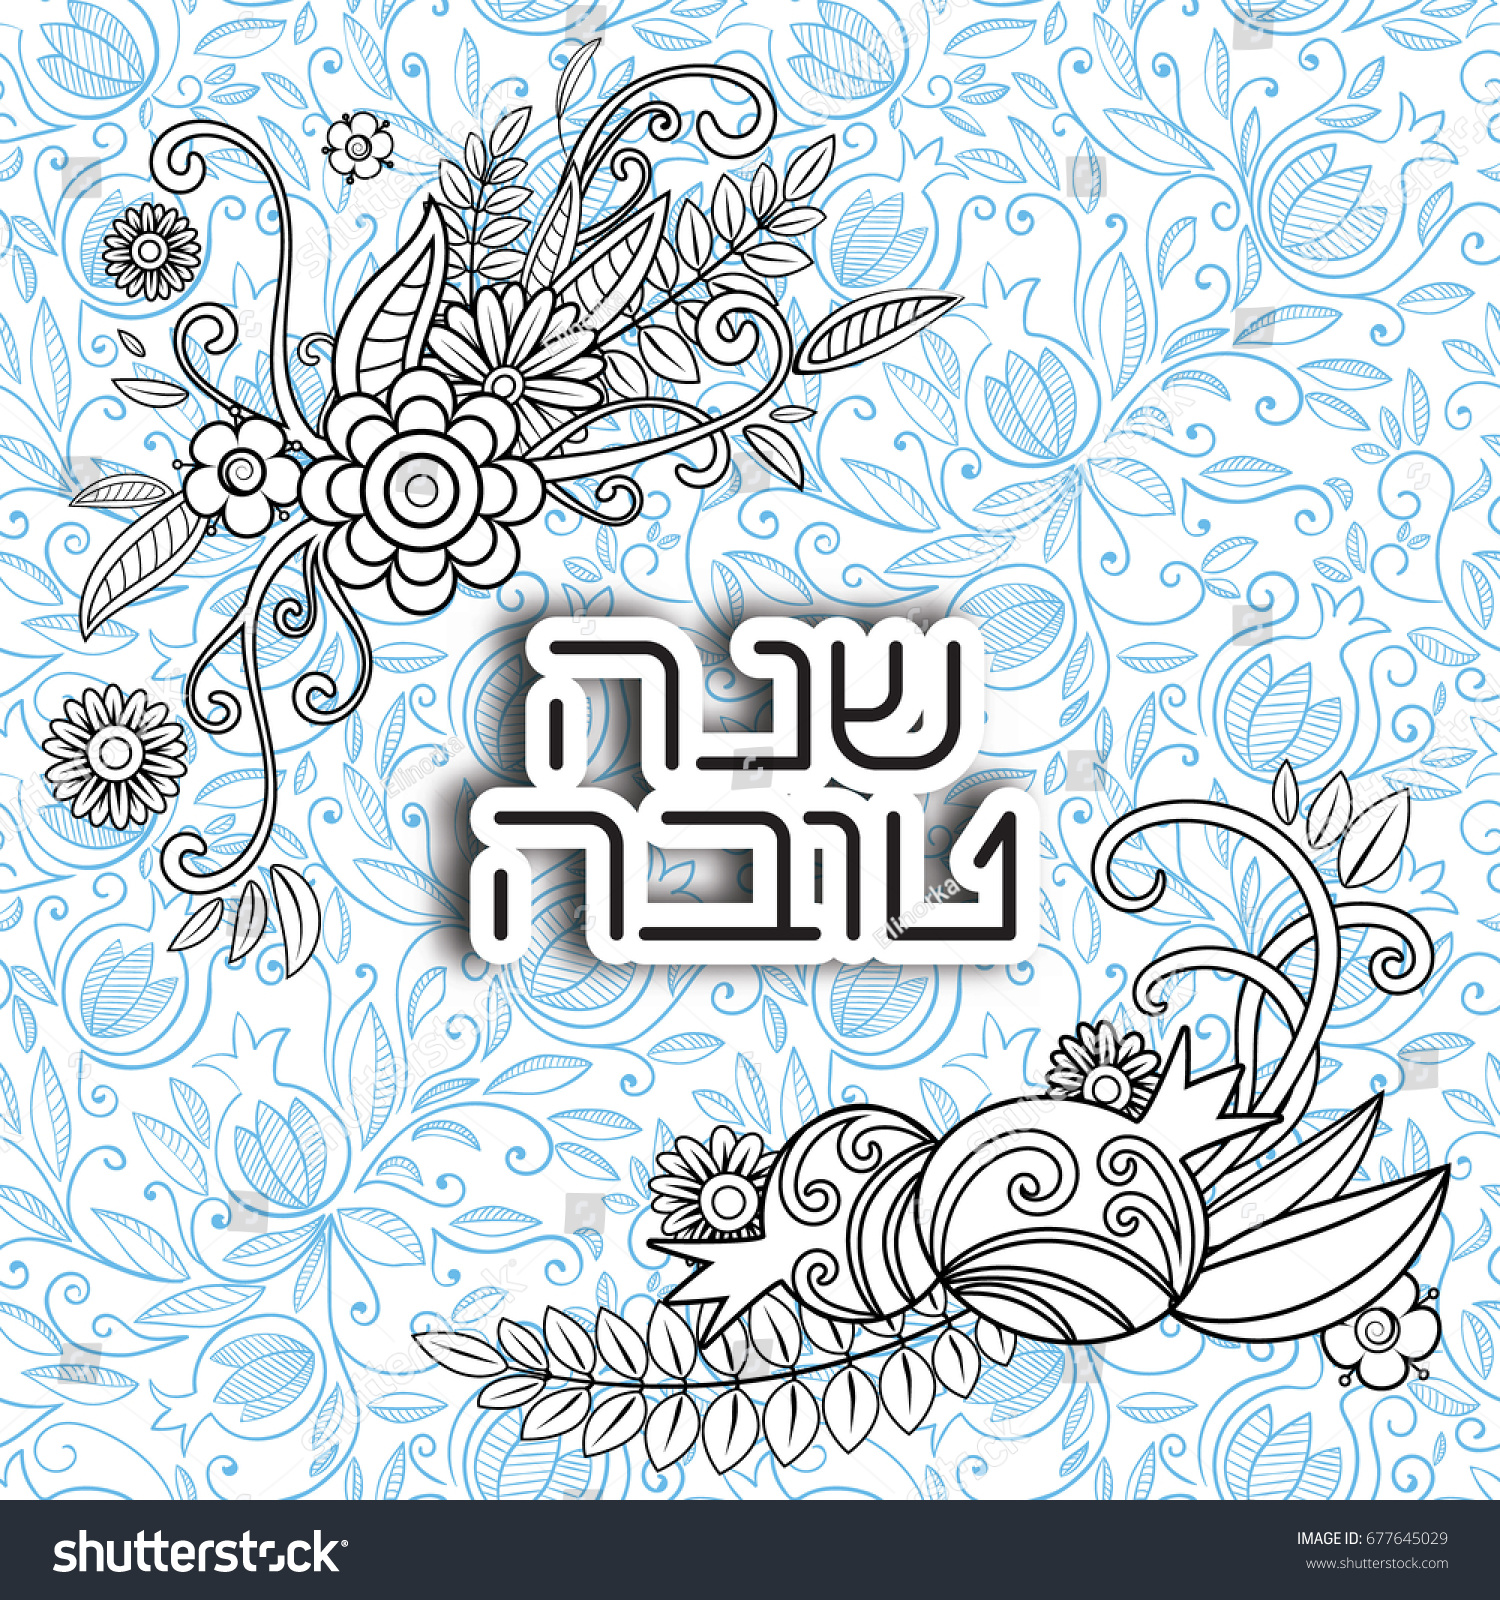 Rosh hashanah jewish new year greeting stock vector 677645029 rosh hashanah jewish new year greeting card with pomegranate hebrew text happy kristyandbryce Image collections